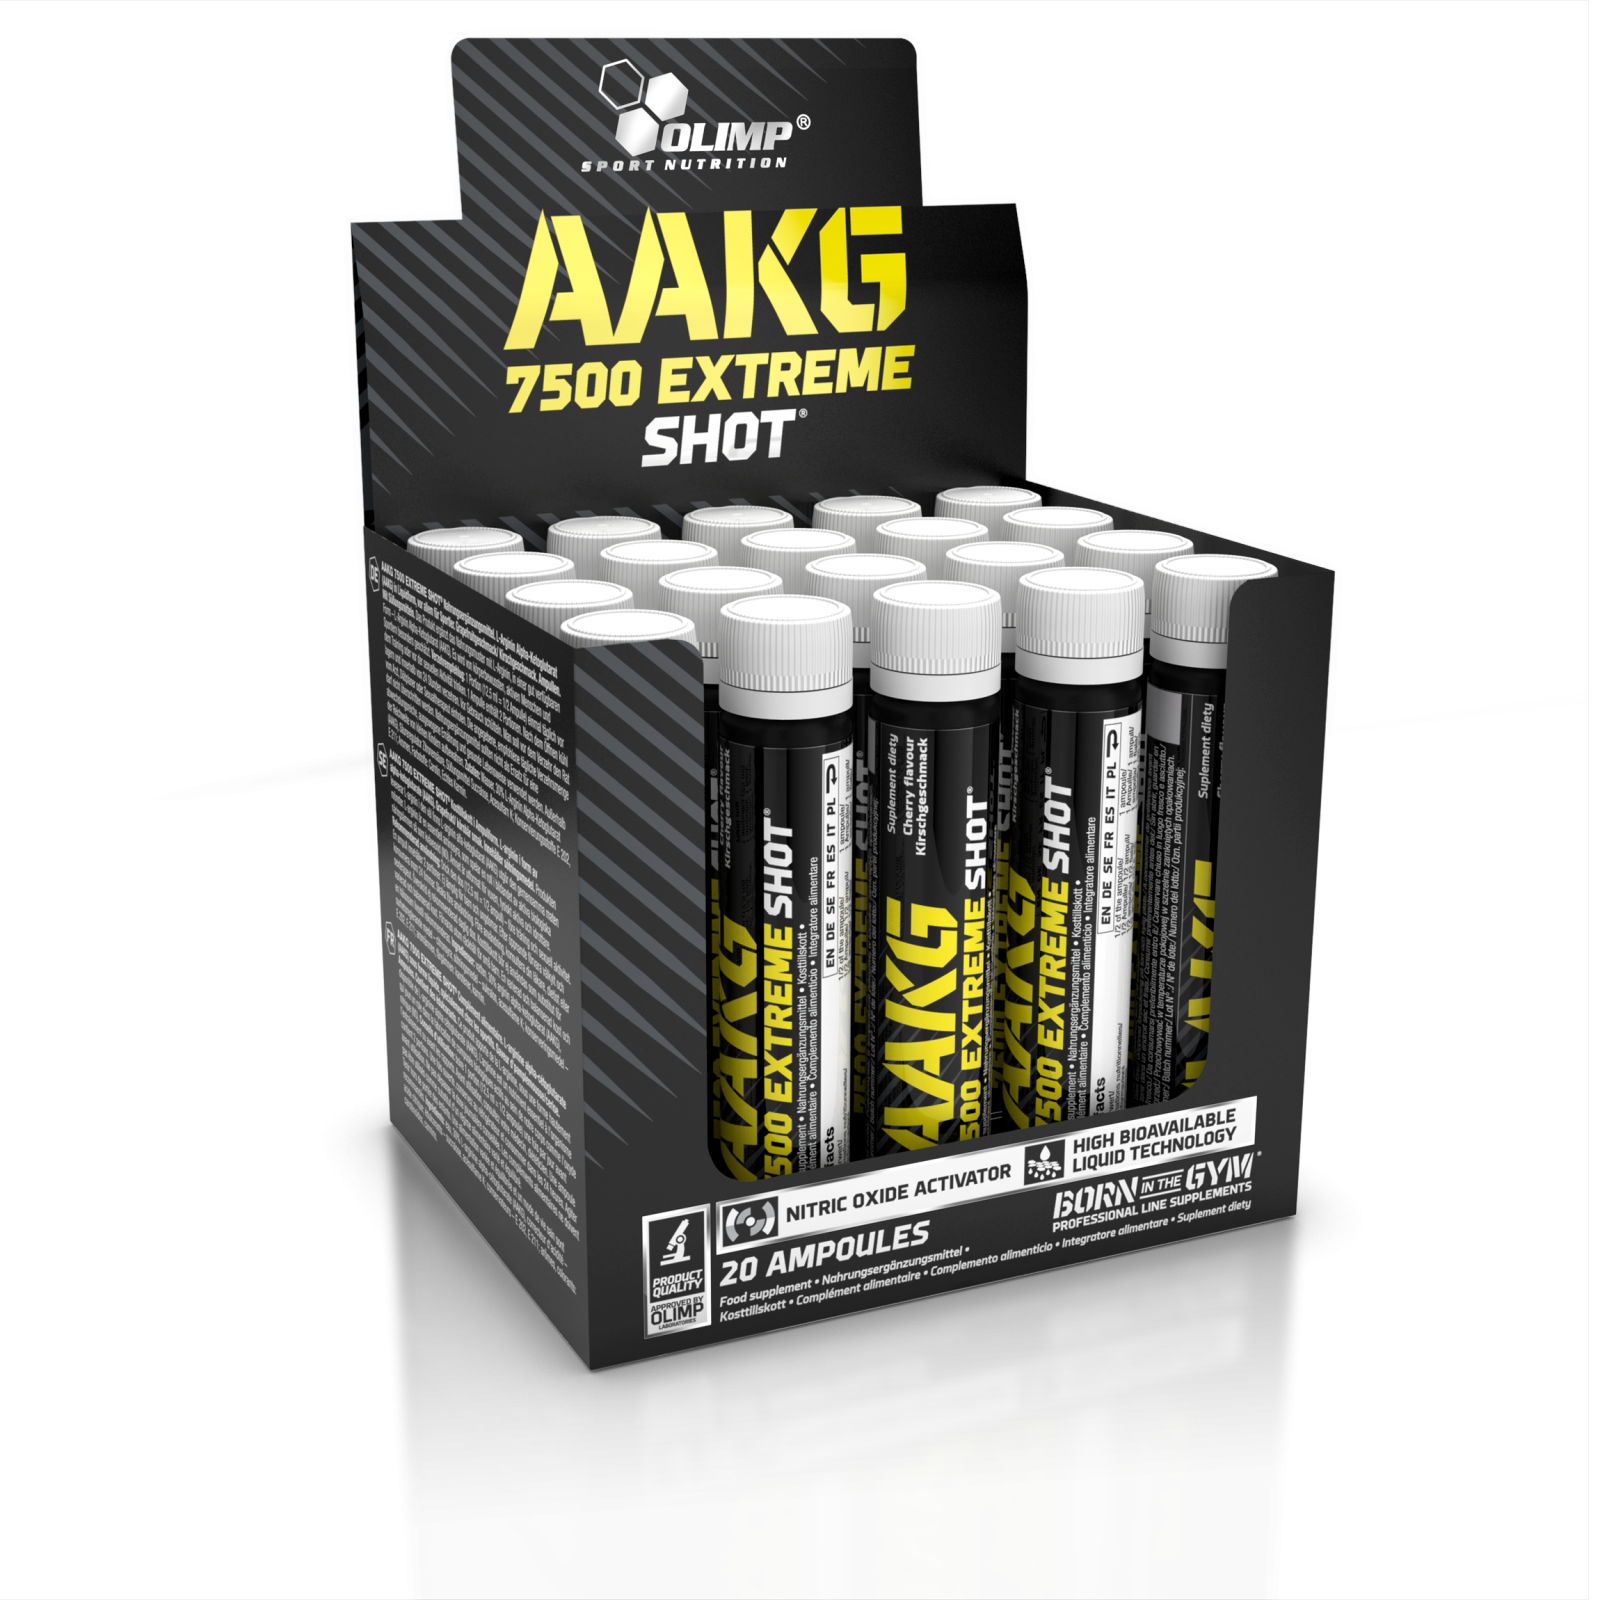 AAKG 7500 Extreme Shot, 20 x 25 ml, Olimp OLIMP Sport Nutrition